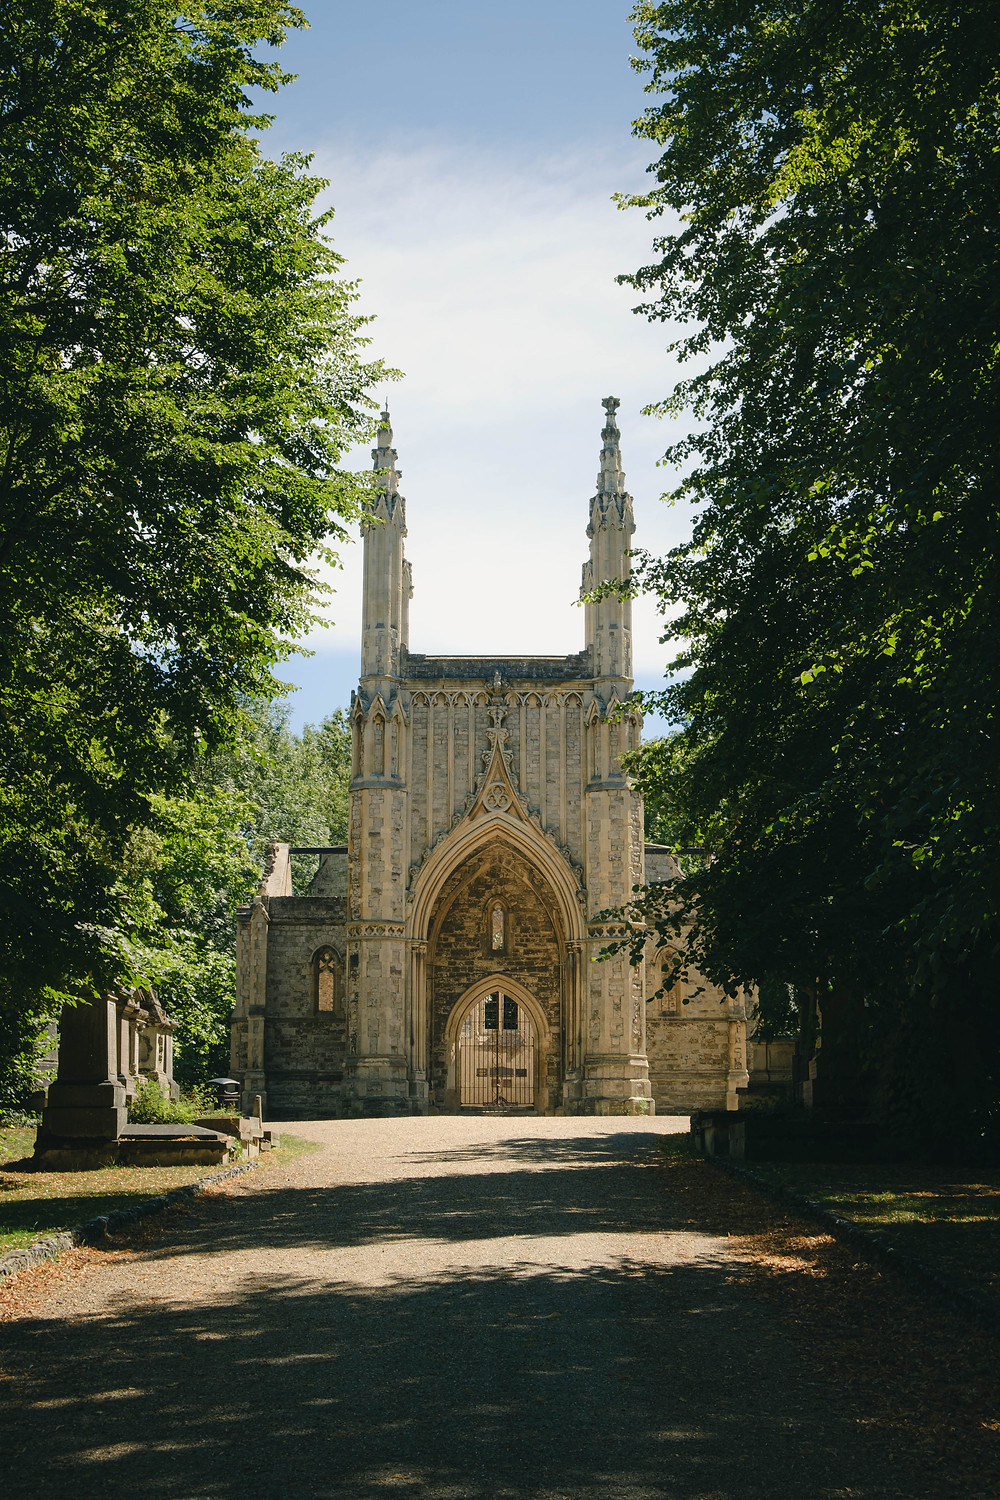 Photograph of Nunhead Cemetery in South London